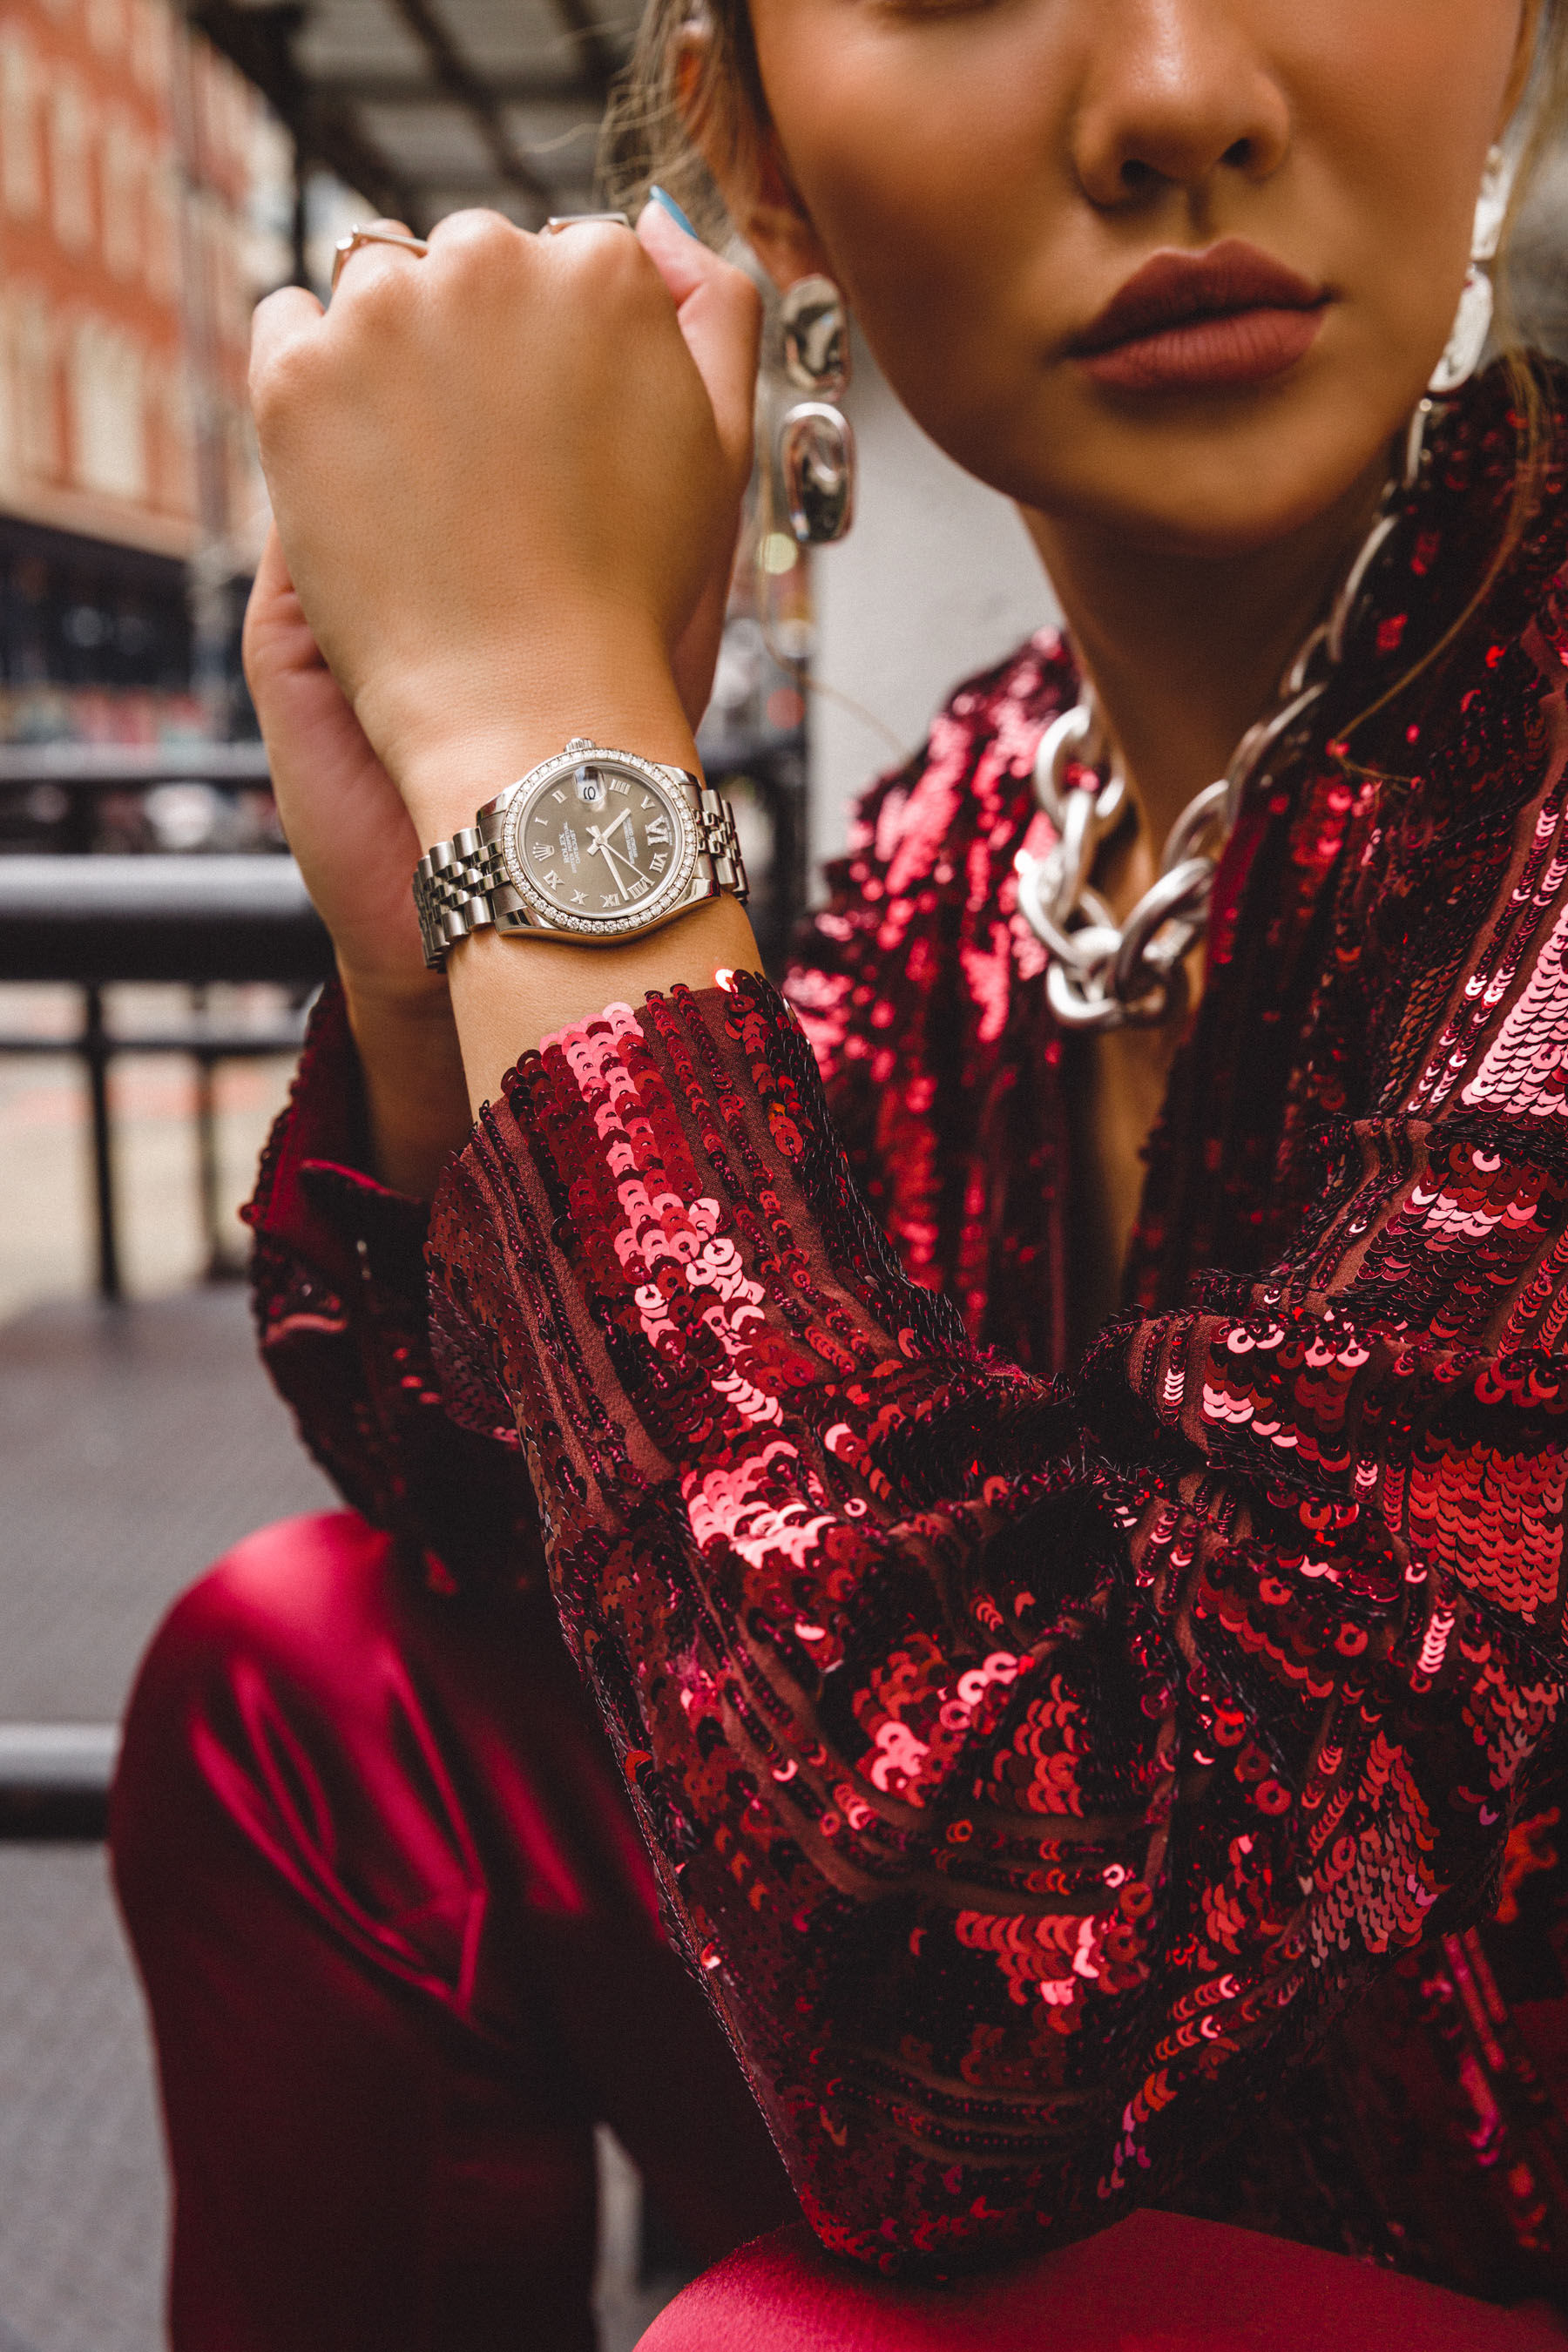 reasons to buy a luxury watch, rolex watch, red sequin top, nyfw street style // Notjessfashion.com